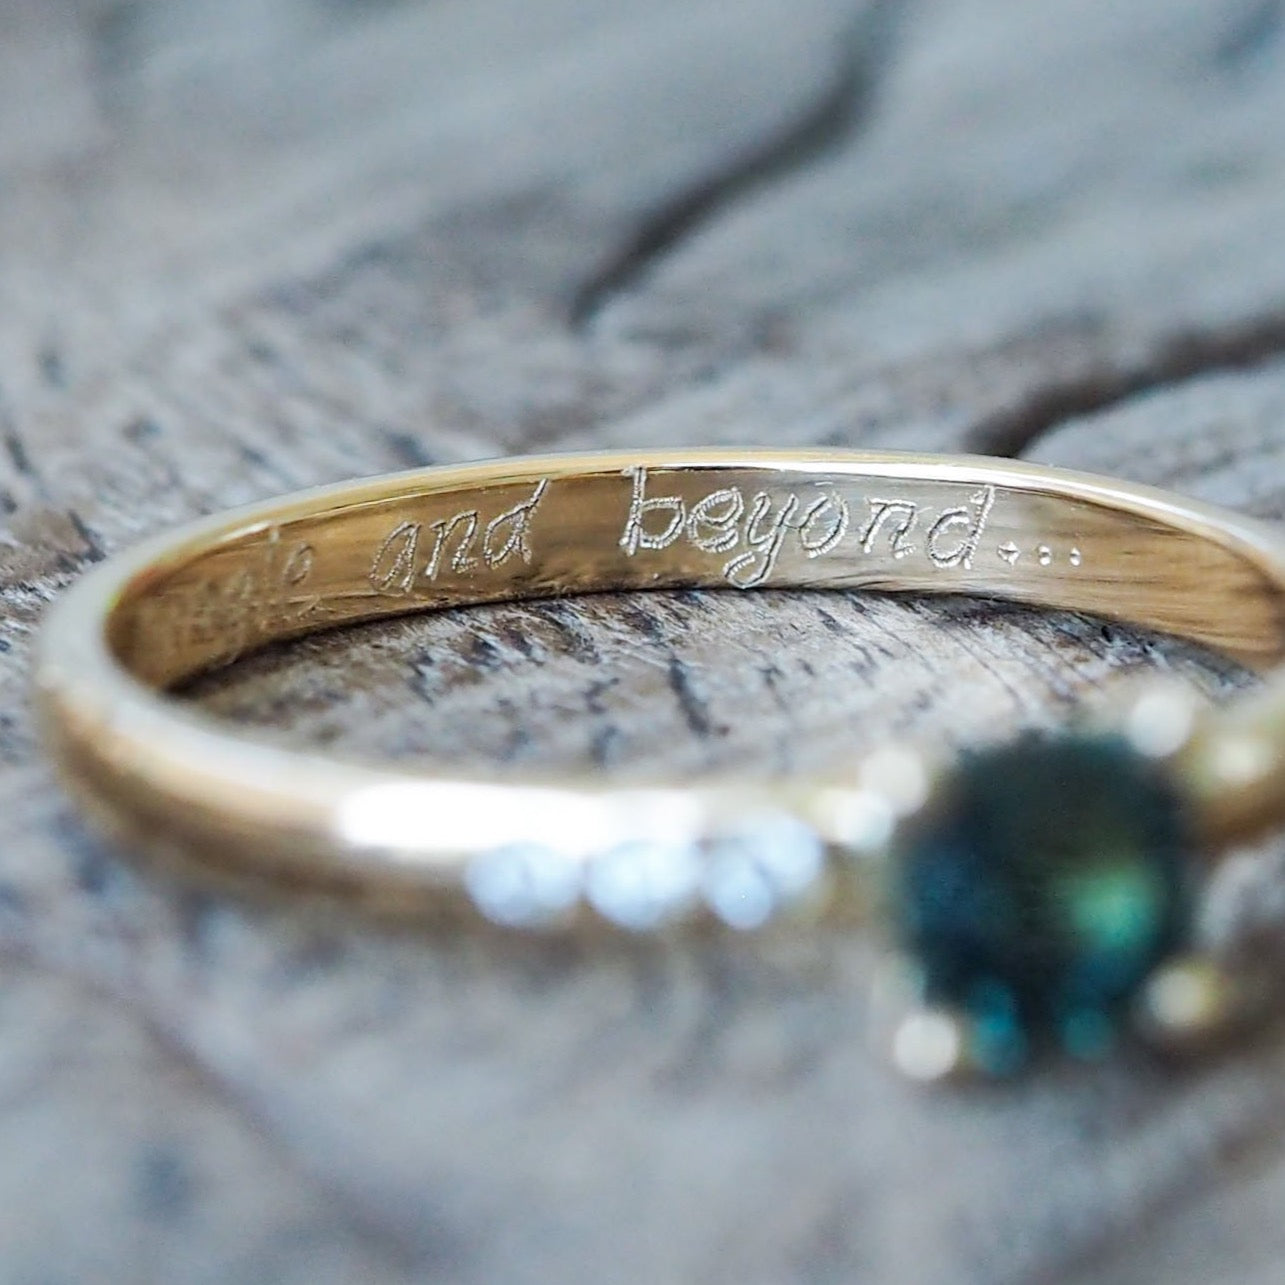 Ring Engraving - Handwritten Inscription